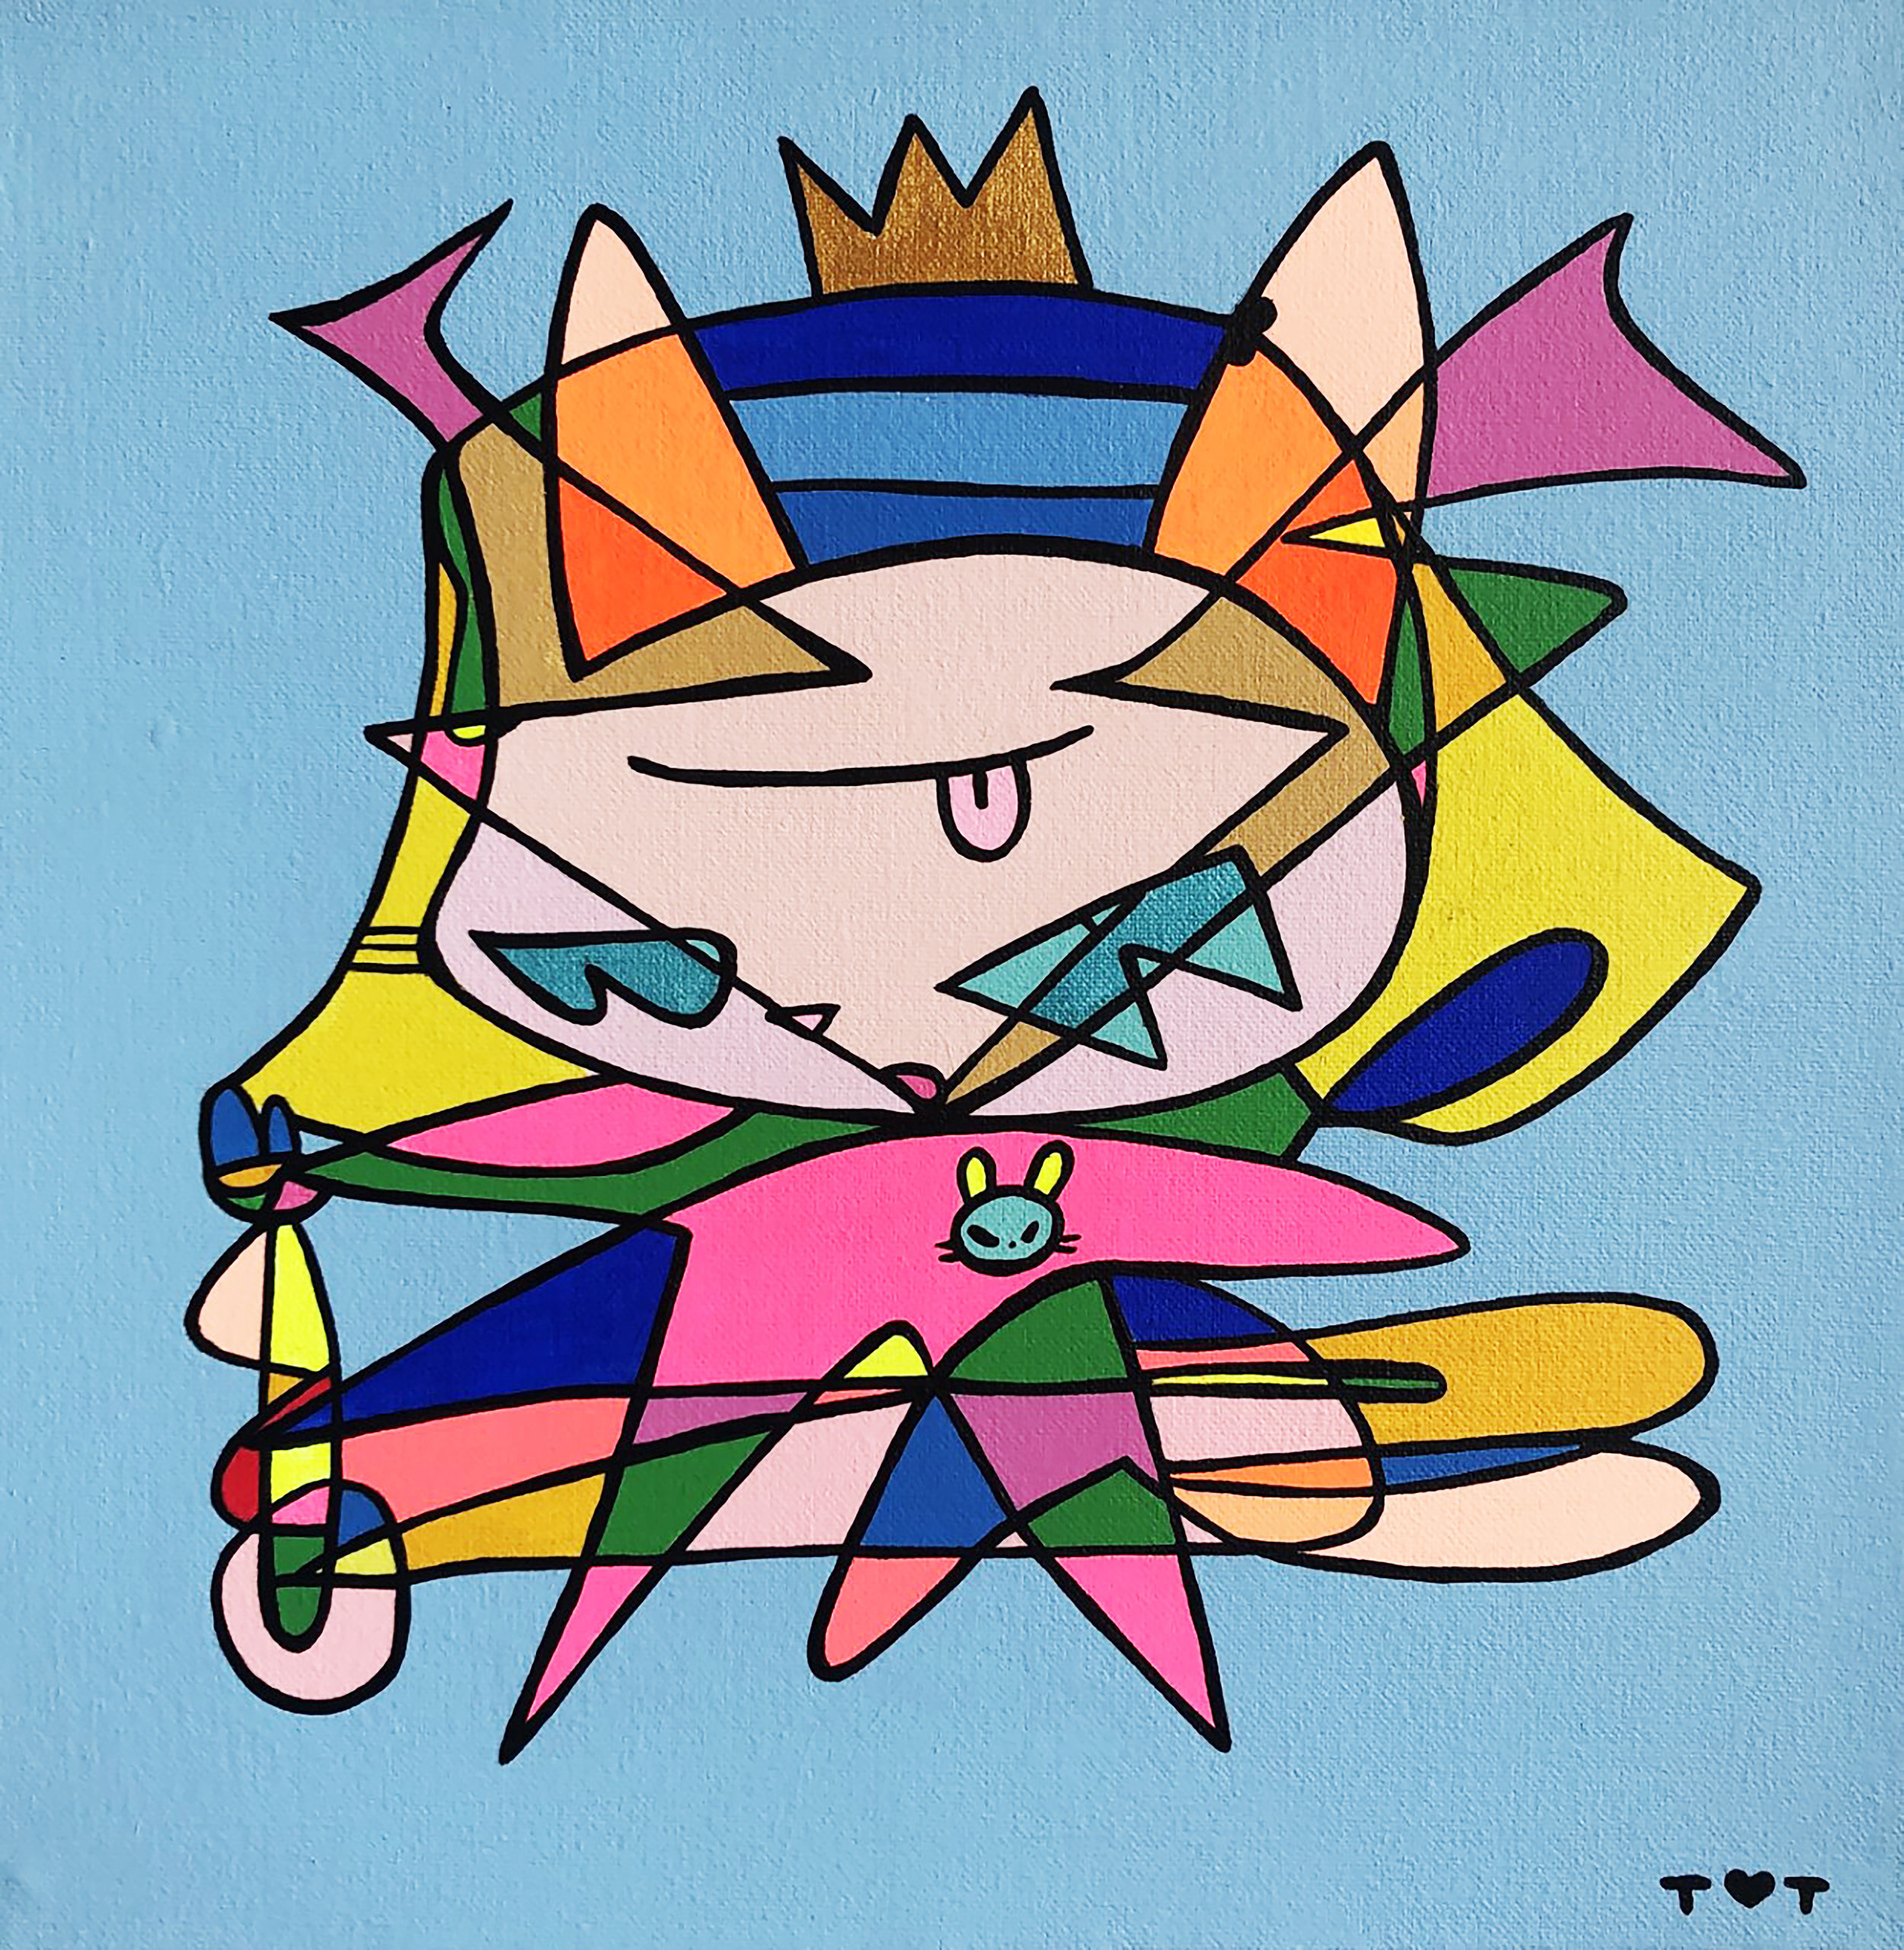 """Gato Samuray"" by TOT (Colombia) represented by HighArtGallery (Japan)"